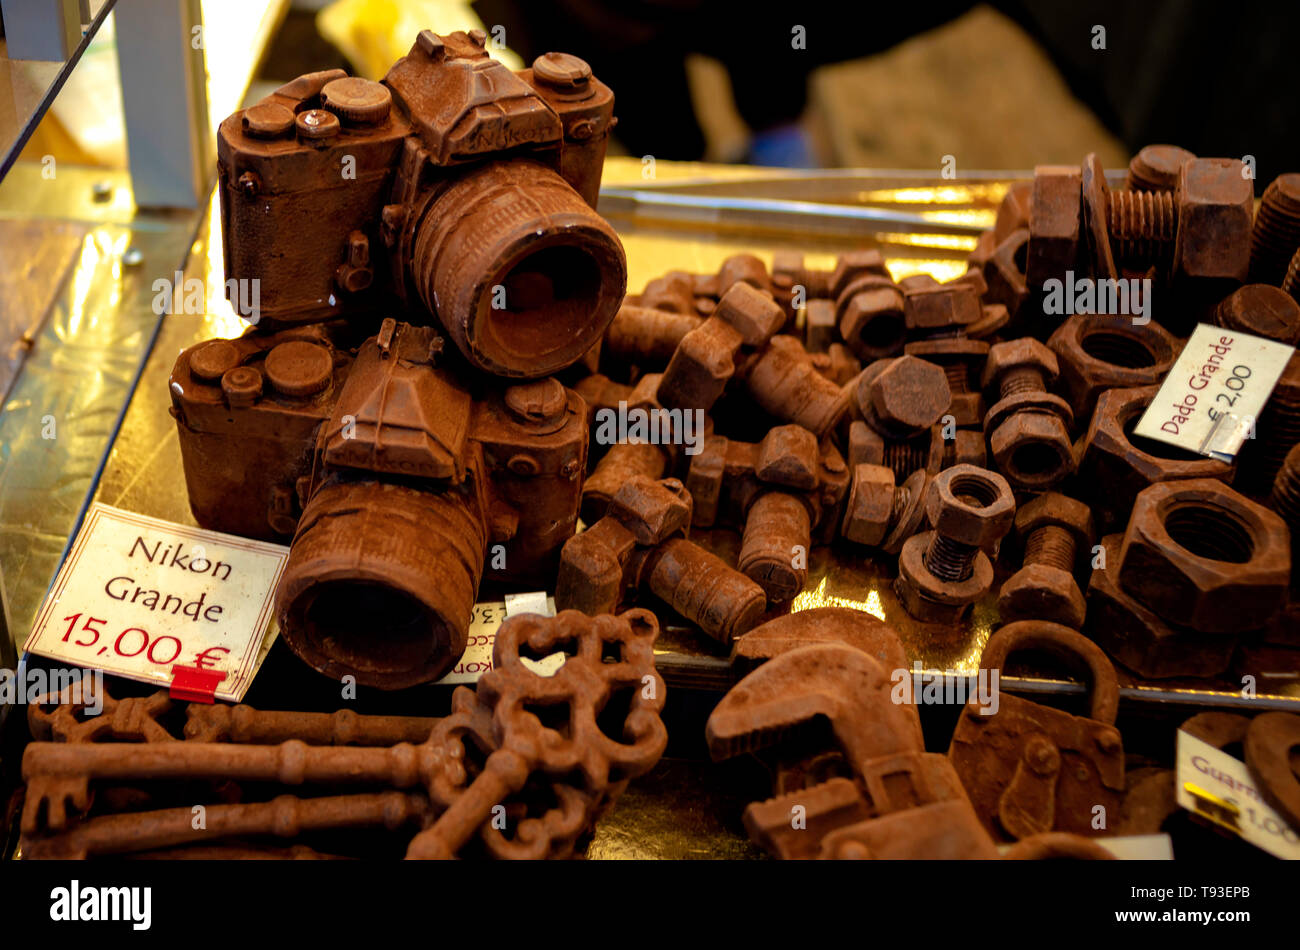 Sculptures made with chocolate during a fair. Featured miniature SLR machine, nuts, bolts, etc. - Stock Image